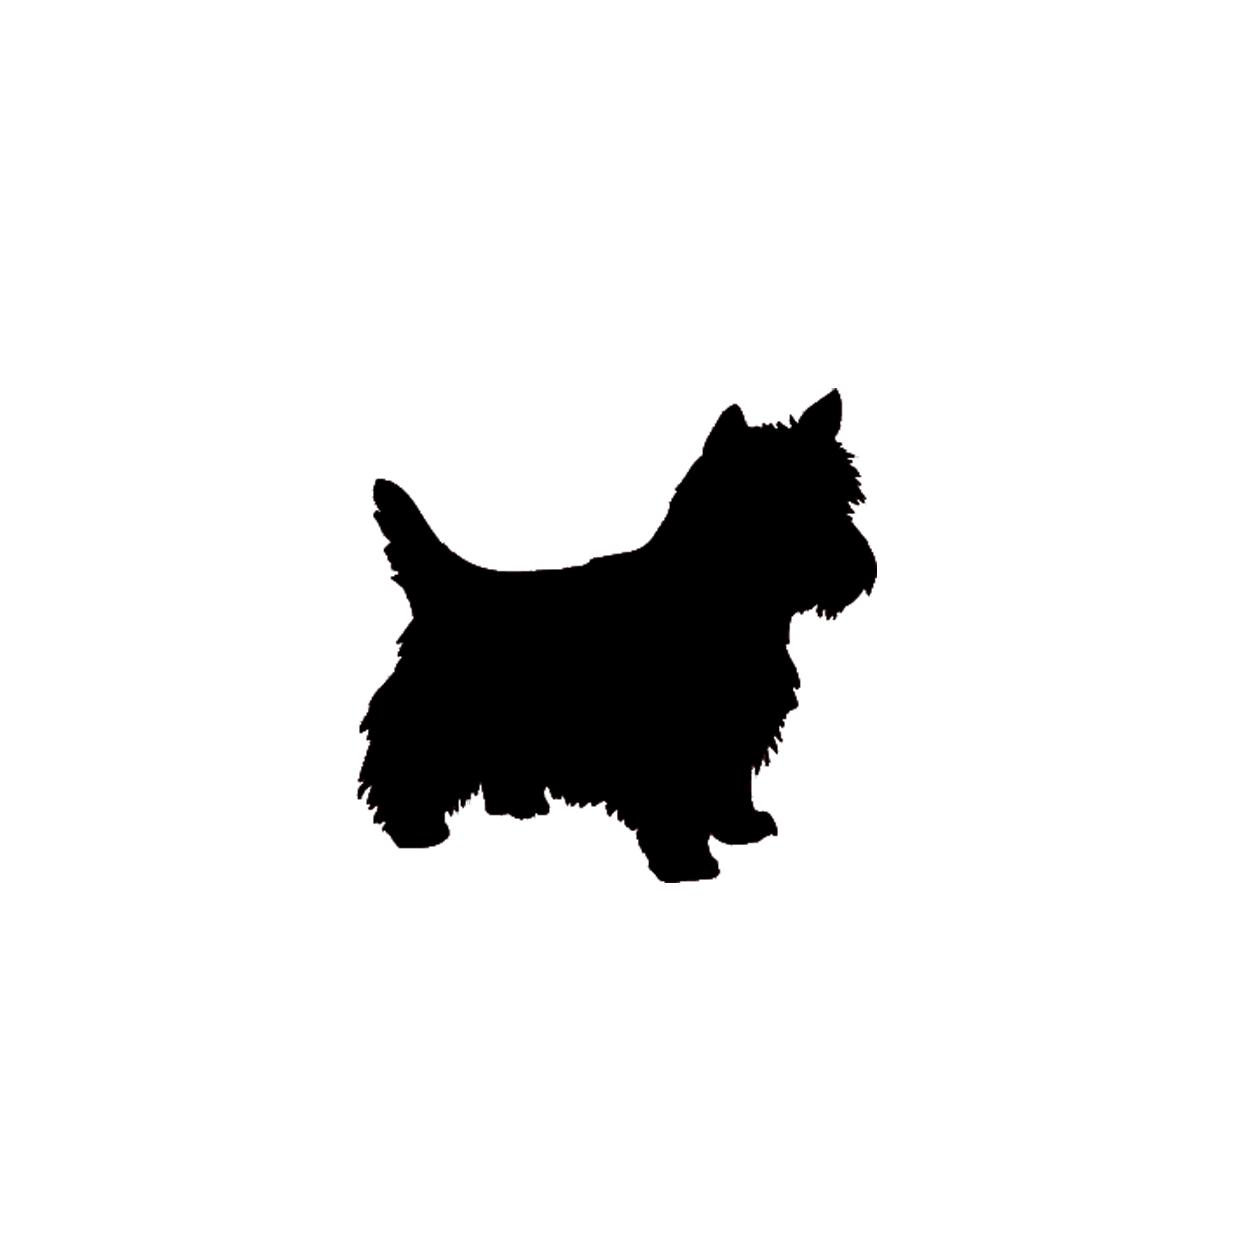 1260x1260 Best 15 Dog And Cat Silhouette Clip Art Free Photos